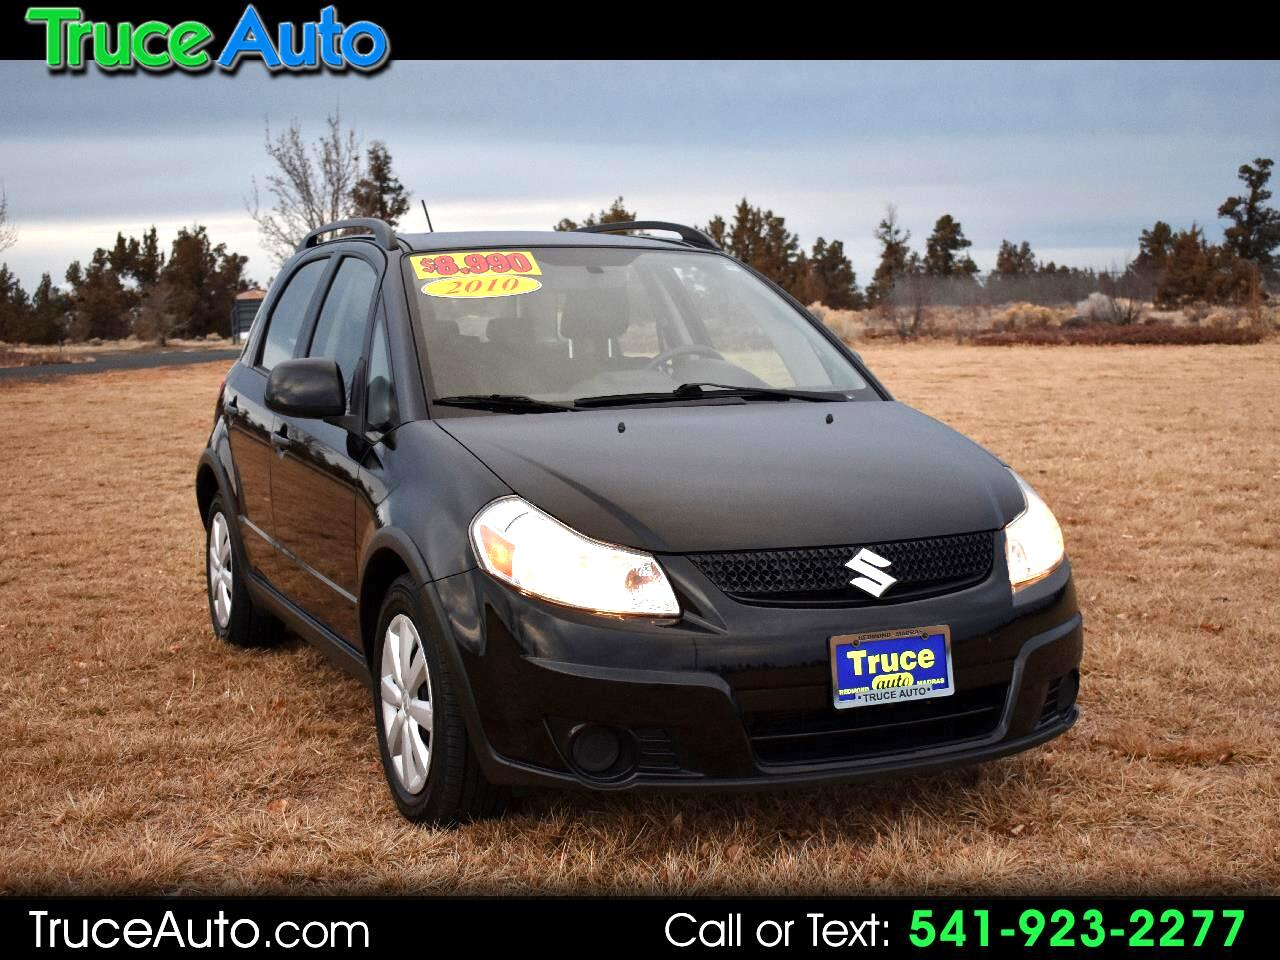 2010 Suzuki SX4 5dr HB Man AWD ***EXTRA LOW MILE***GAS SAVER***